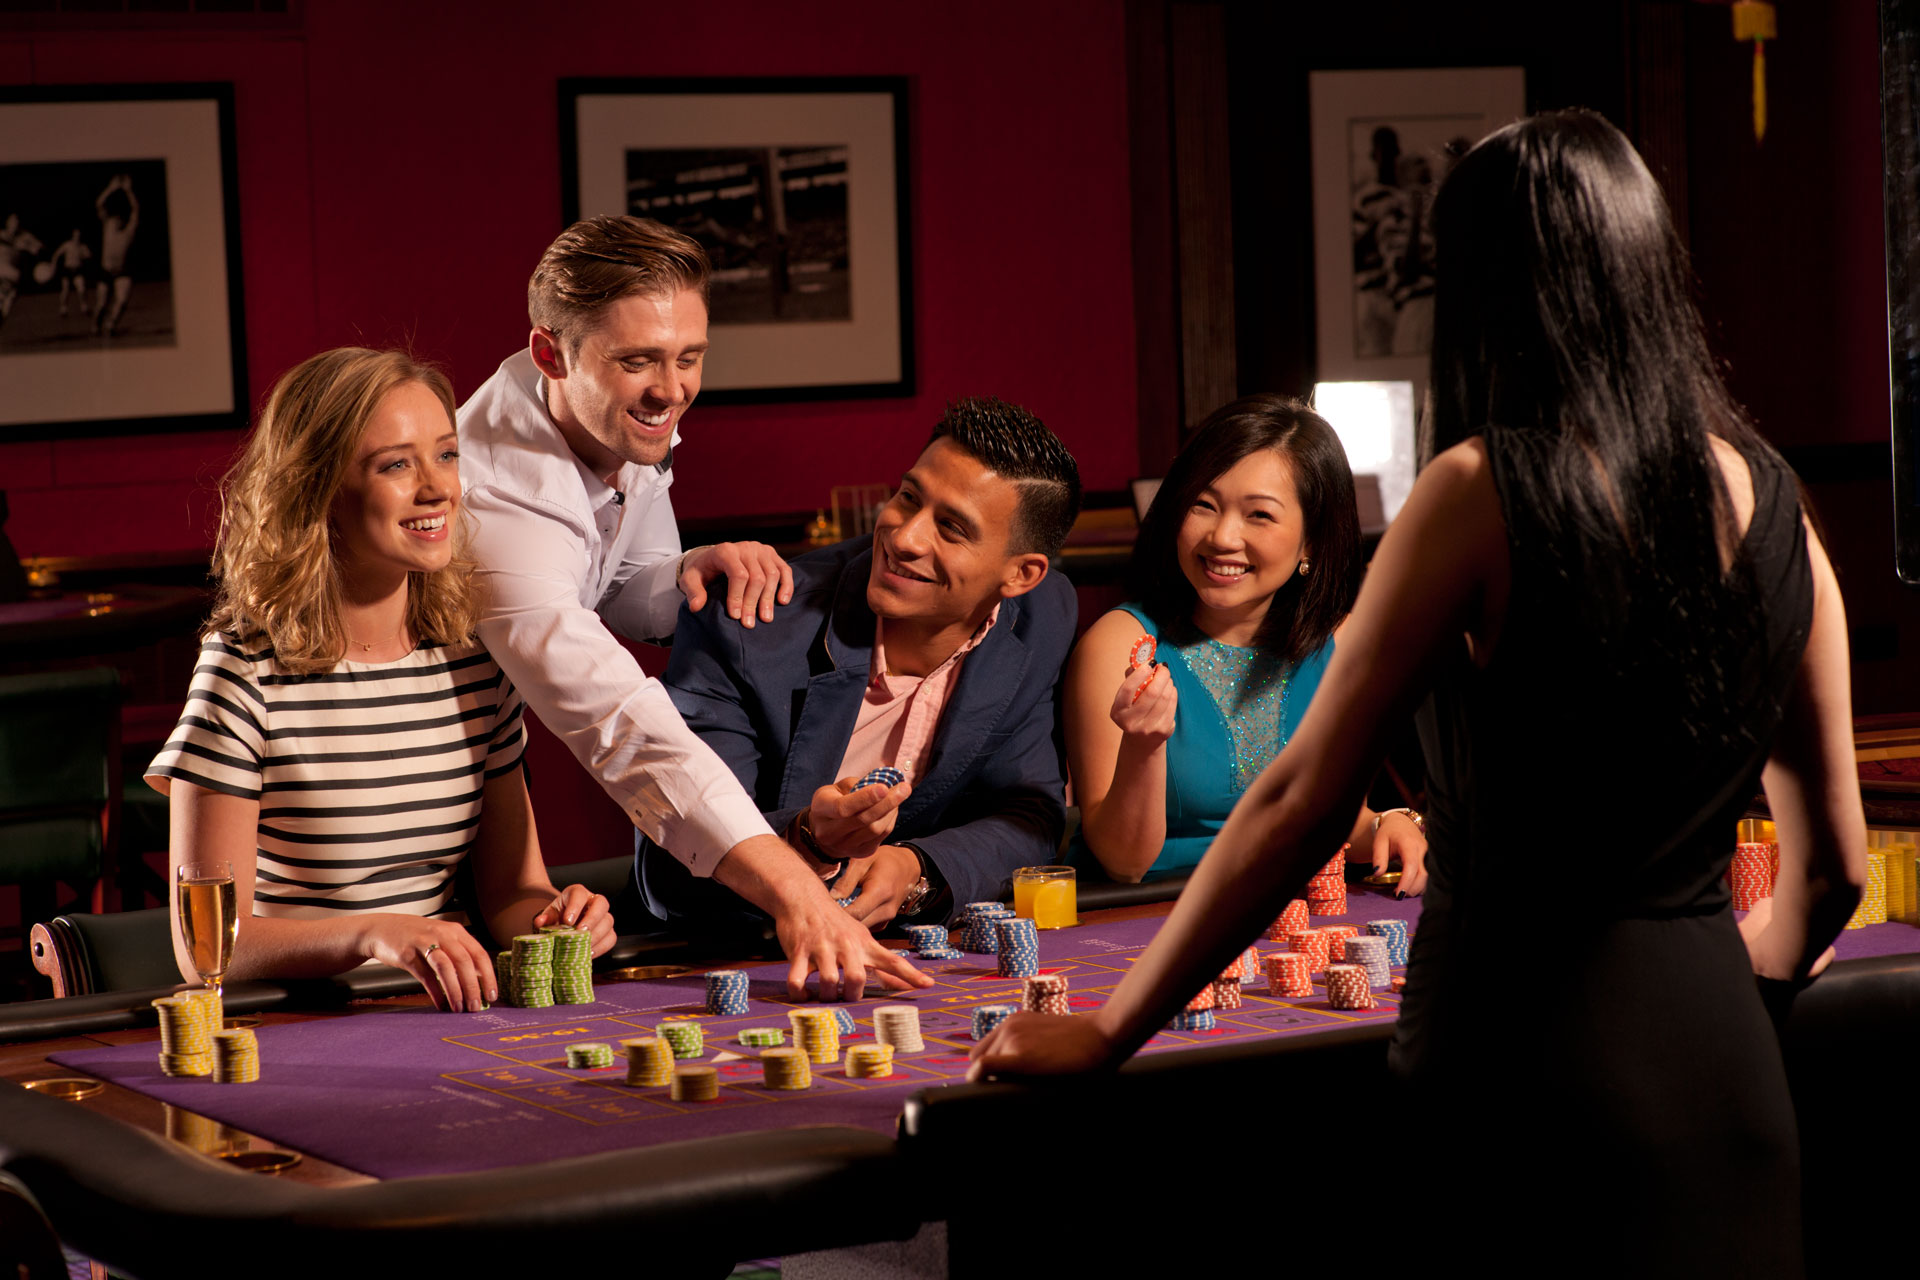 Test your luck of gambling by playing online slots